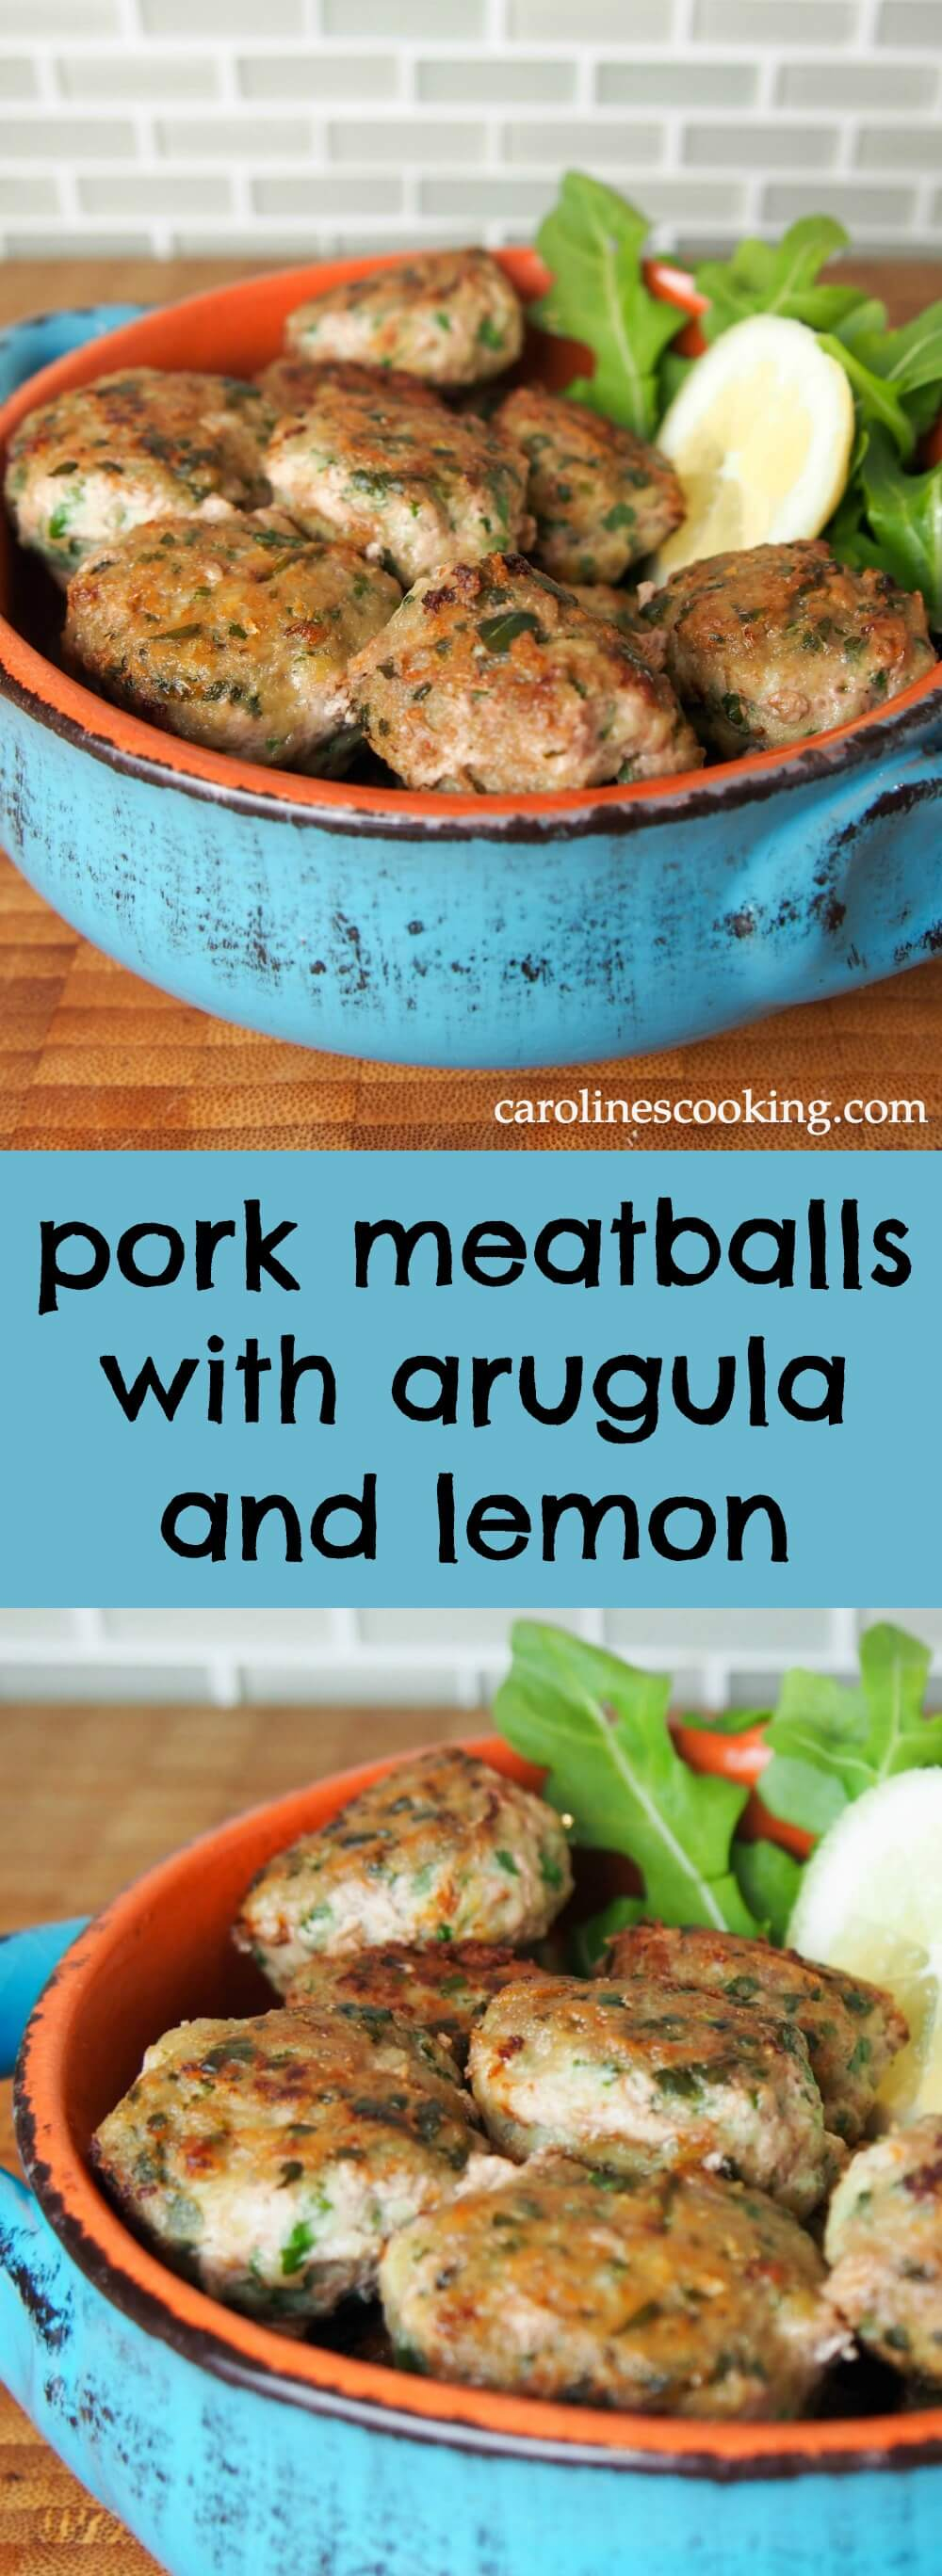 These pork meatballs are made with arugula, lemon and parmesan, giving them a delicious freshness. Quick and easy to make, they're great as an appetizer or main.